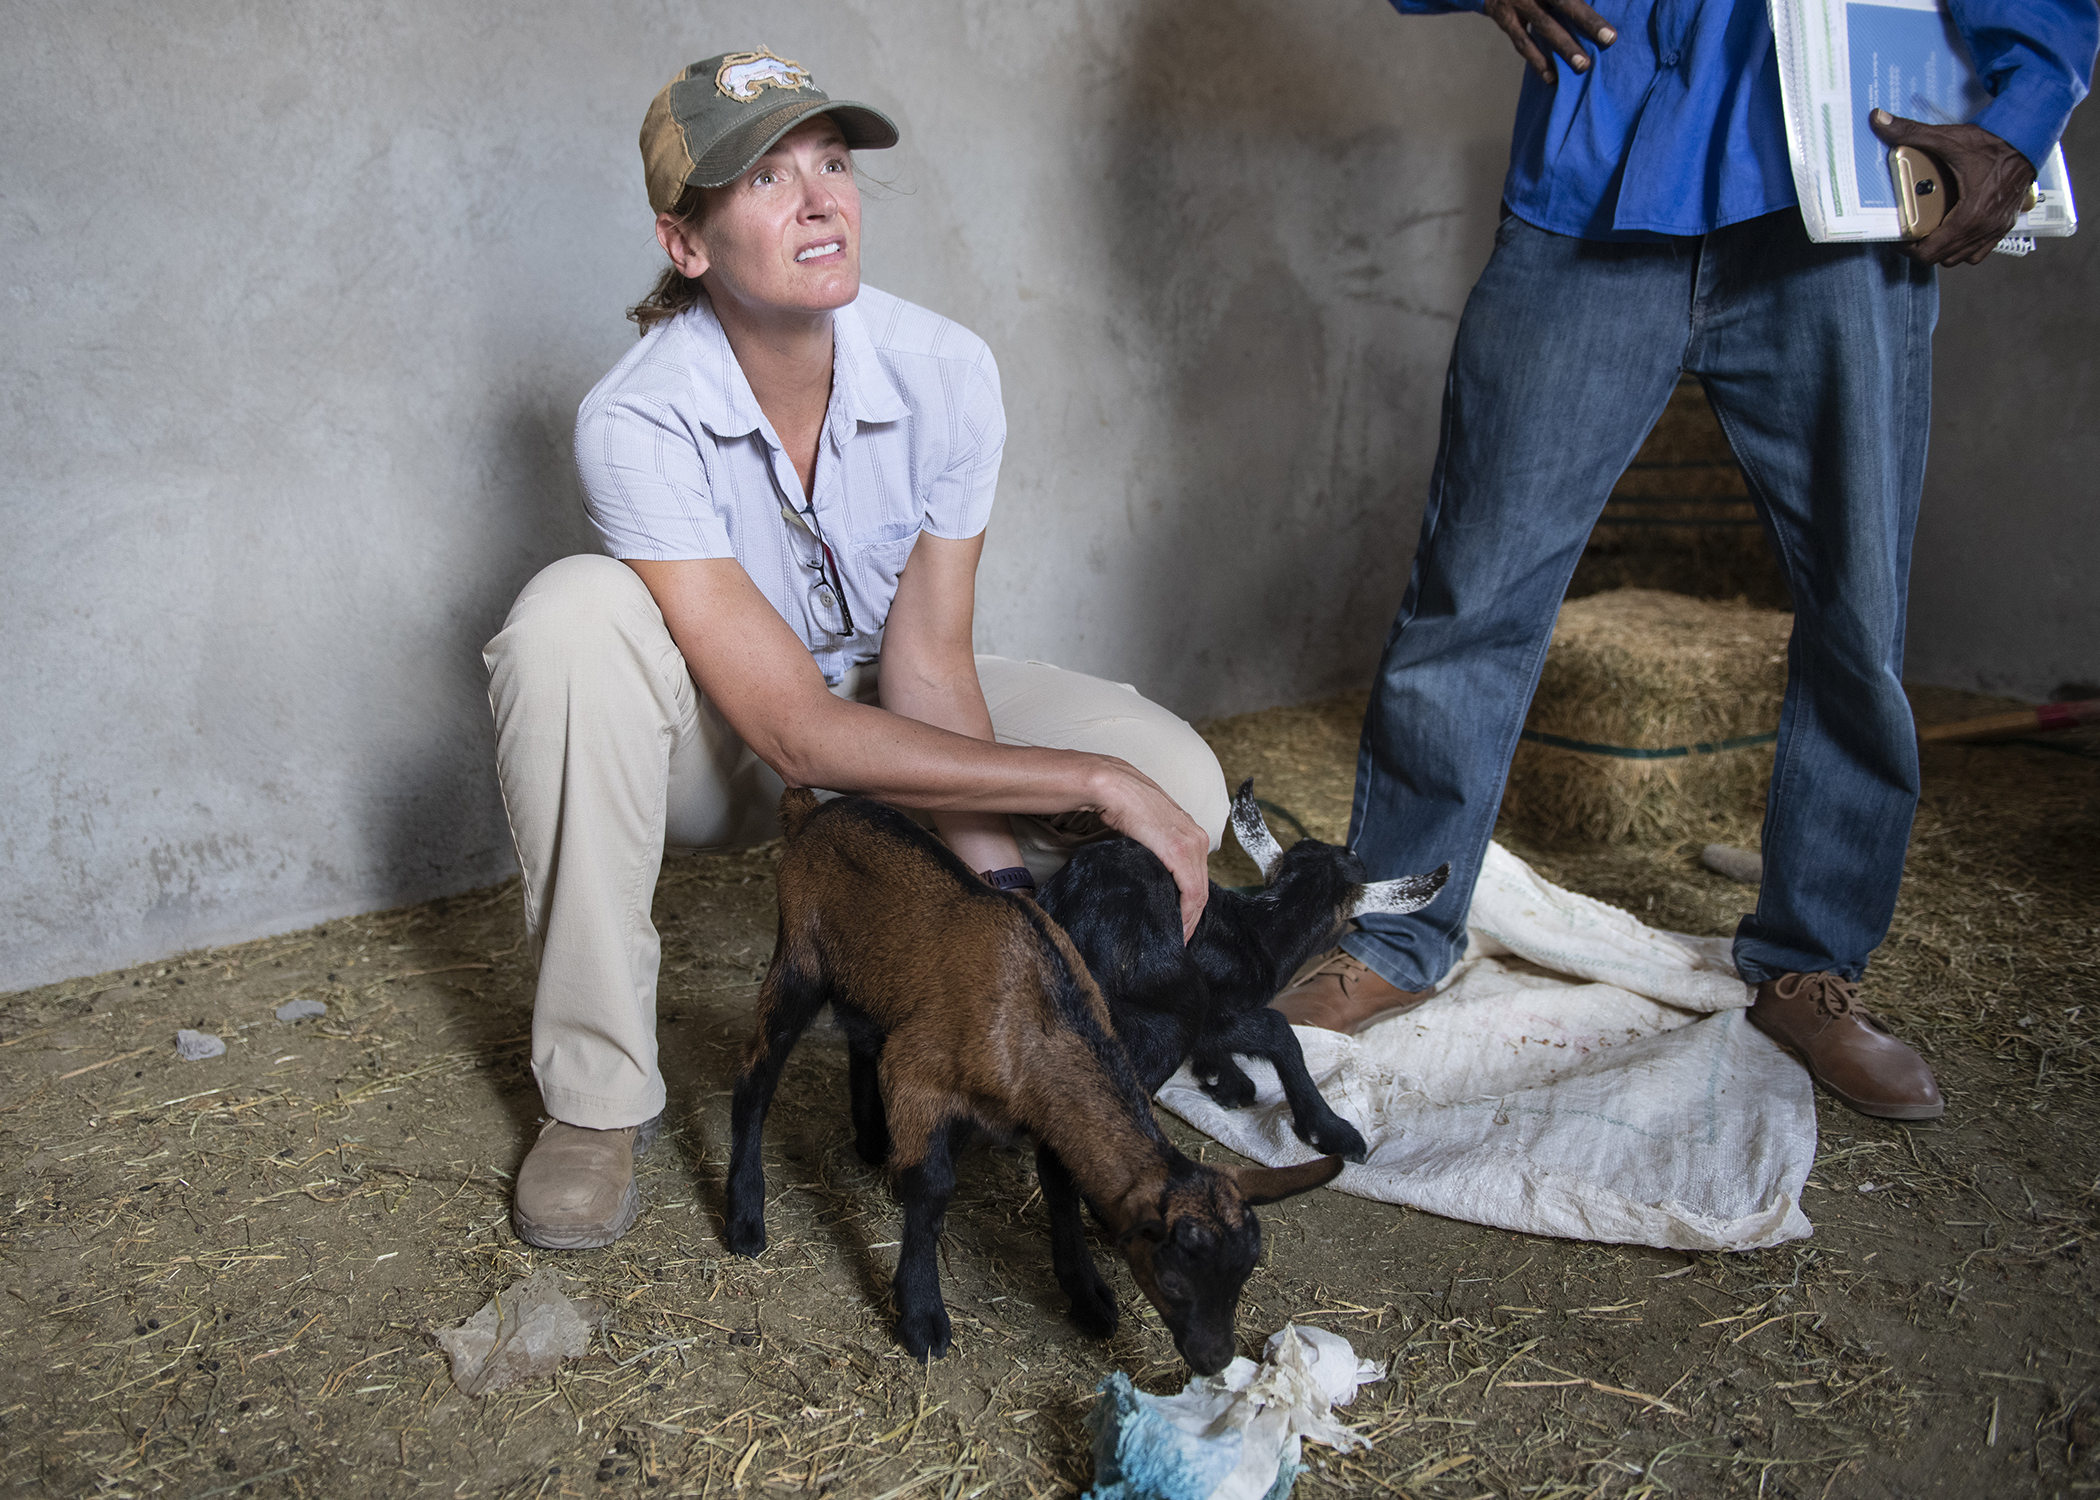 U.S. Army Lt. Col. Leah Tingley, a veterinarian assigned to the 403rd Civil Affairs Battalion, Functional Specialty Cell Veterinary Team, assigned to Combined Joint Task Force-Horn of Africa, checks a goat's health while meeting with local pastoralists to promote better herd-health management and to facilitate communication for further engagements during a veterinary civic action project (VETCAP) in Oulma, Djibouti, Feb. 14, 2019. The purpose of civil affairs VETCAPs is to build relationships with local community animal health workers and the Djiboutian Ministry of Livestock via animal health surveillance and to improve knowledge, skills, livestock medicine and best practices. (U.S. Air Force photo by Tech. Sgt. Shawn Nickel)